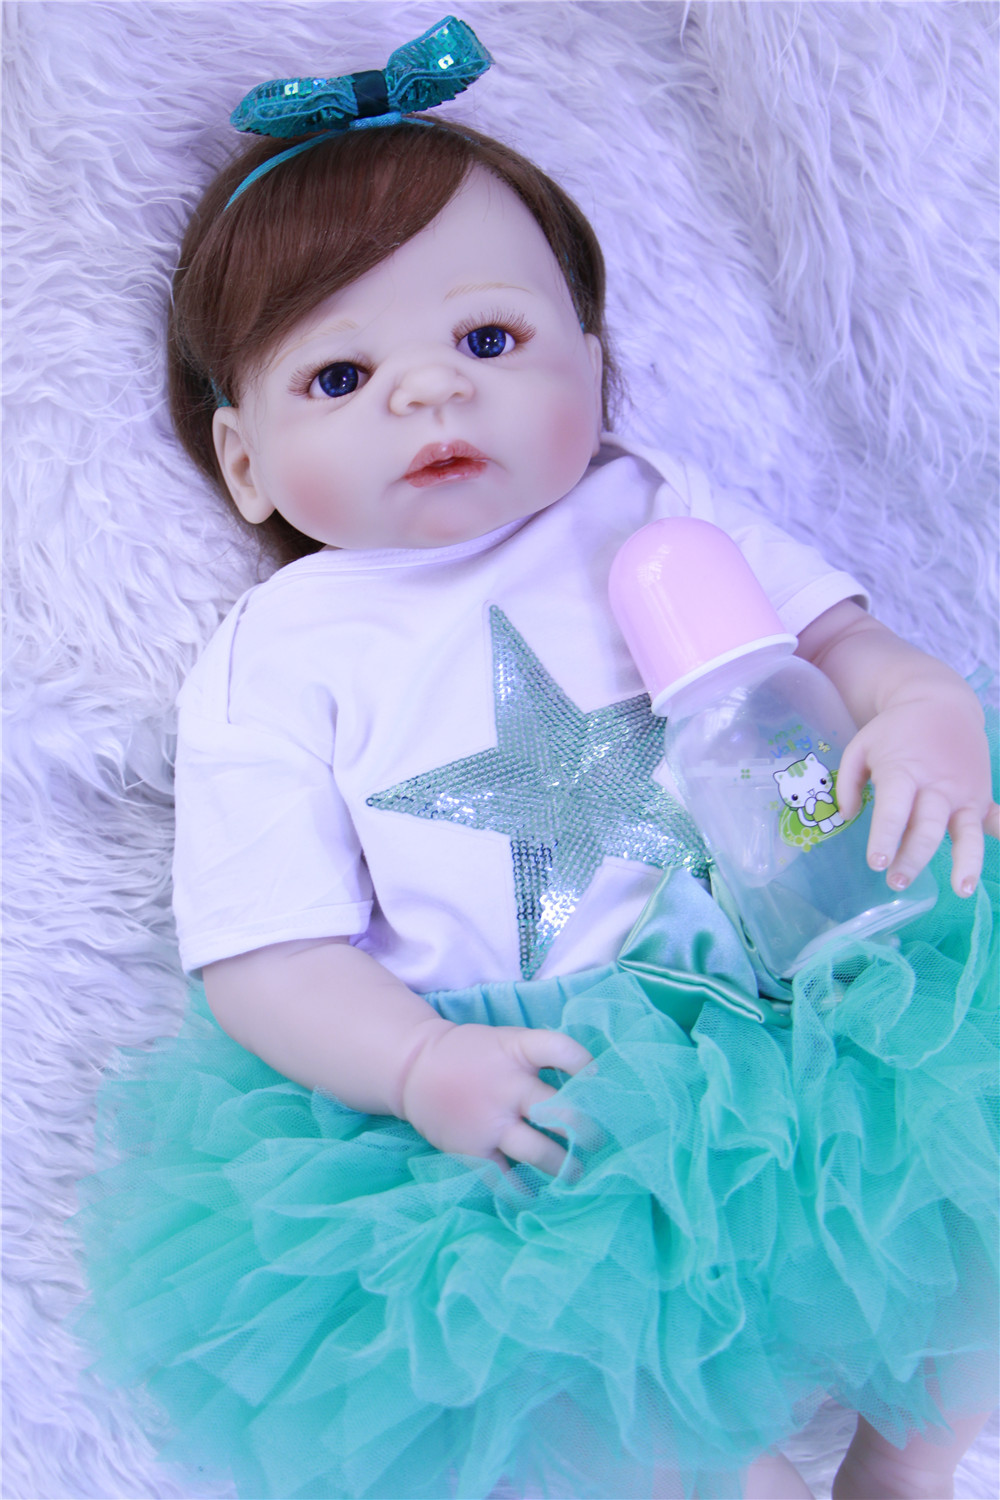 Beautiful blue eyes Silicone Vinyl Reborn Baby Girl soft alive Newborn Babies Doll rooted hair Ethnic bebe Toddler toy For kids Beautiful blue eyes Silicone Vinyl Reborn Baby Girl soft alive Newborn Babies Doll rooted hair Ethnic bebe Toddler toy For kids